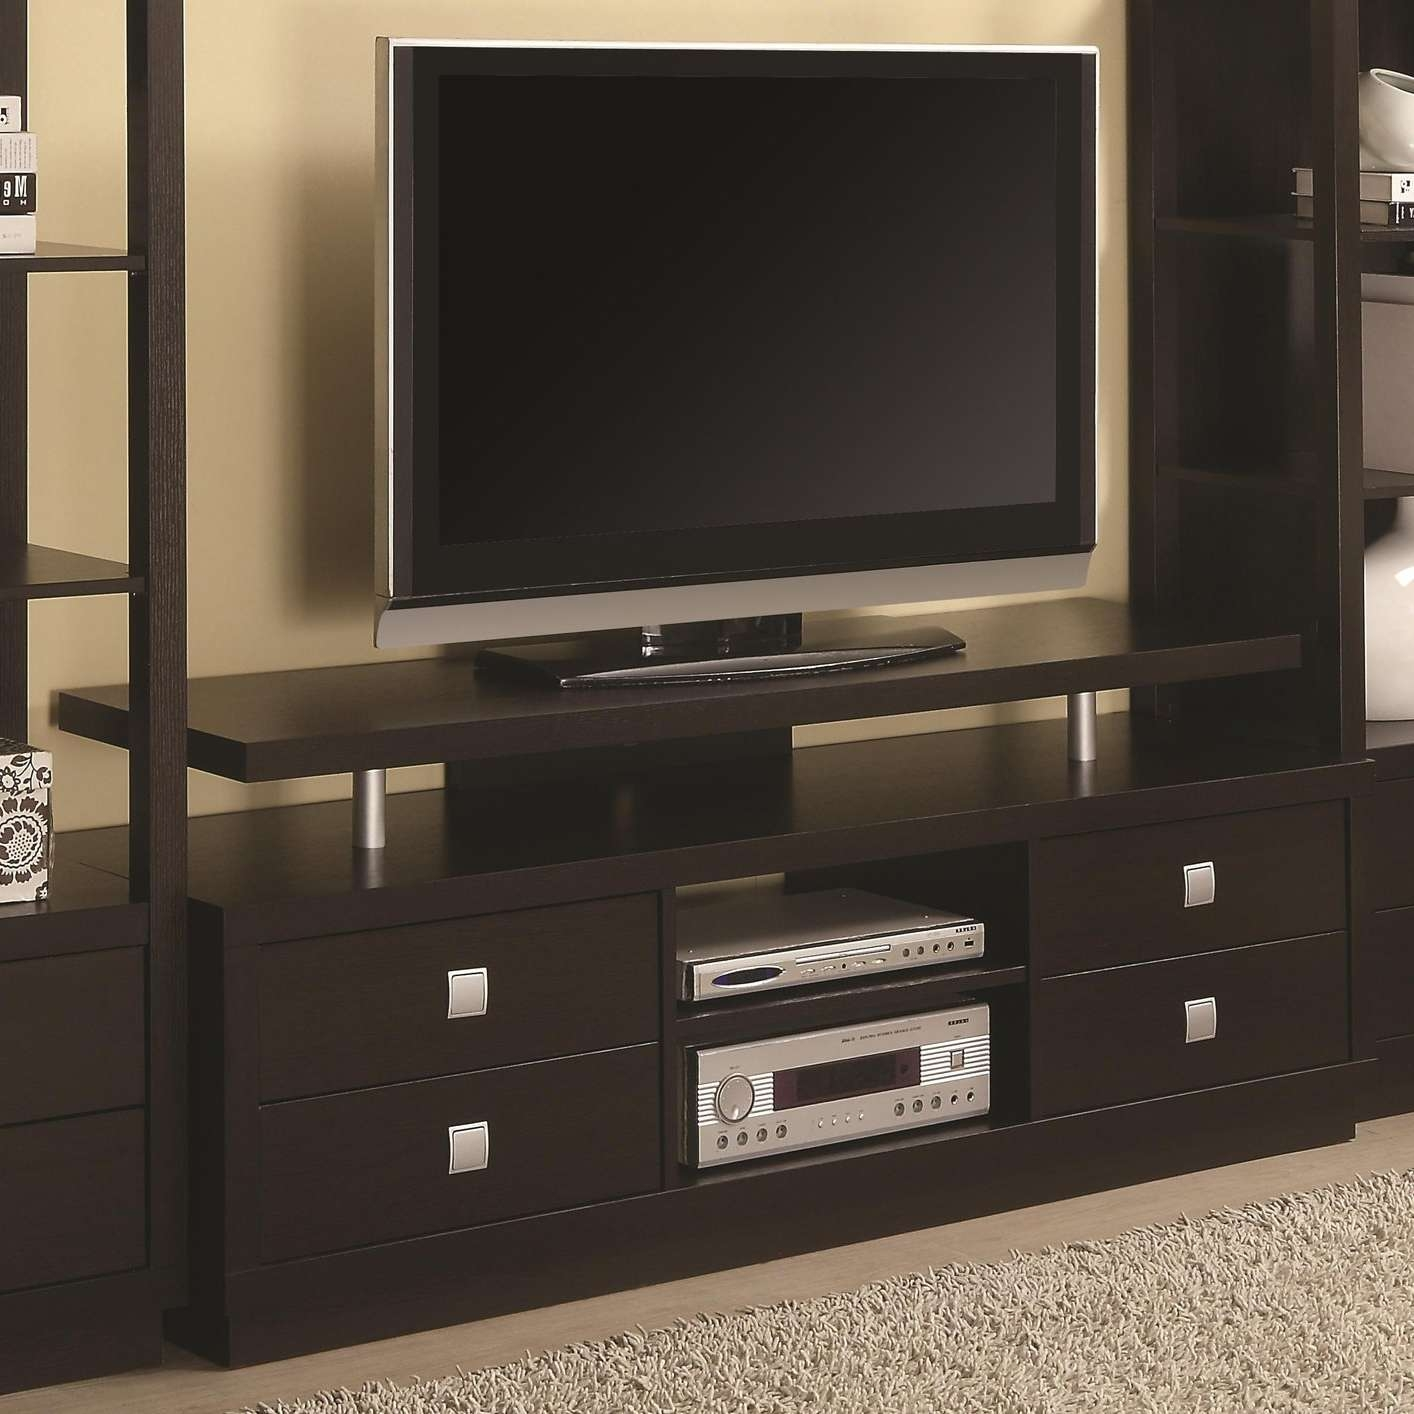 Brown Wood Tv Stand – Steal A Sofa Furniture Outlet Los Angeles Ca For Wooden Tv Stands (View 2 of 15)